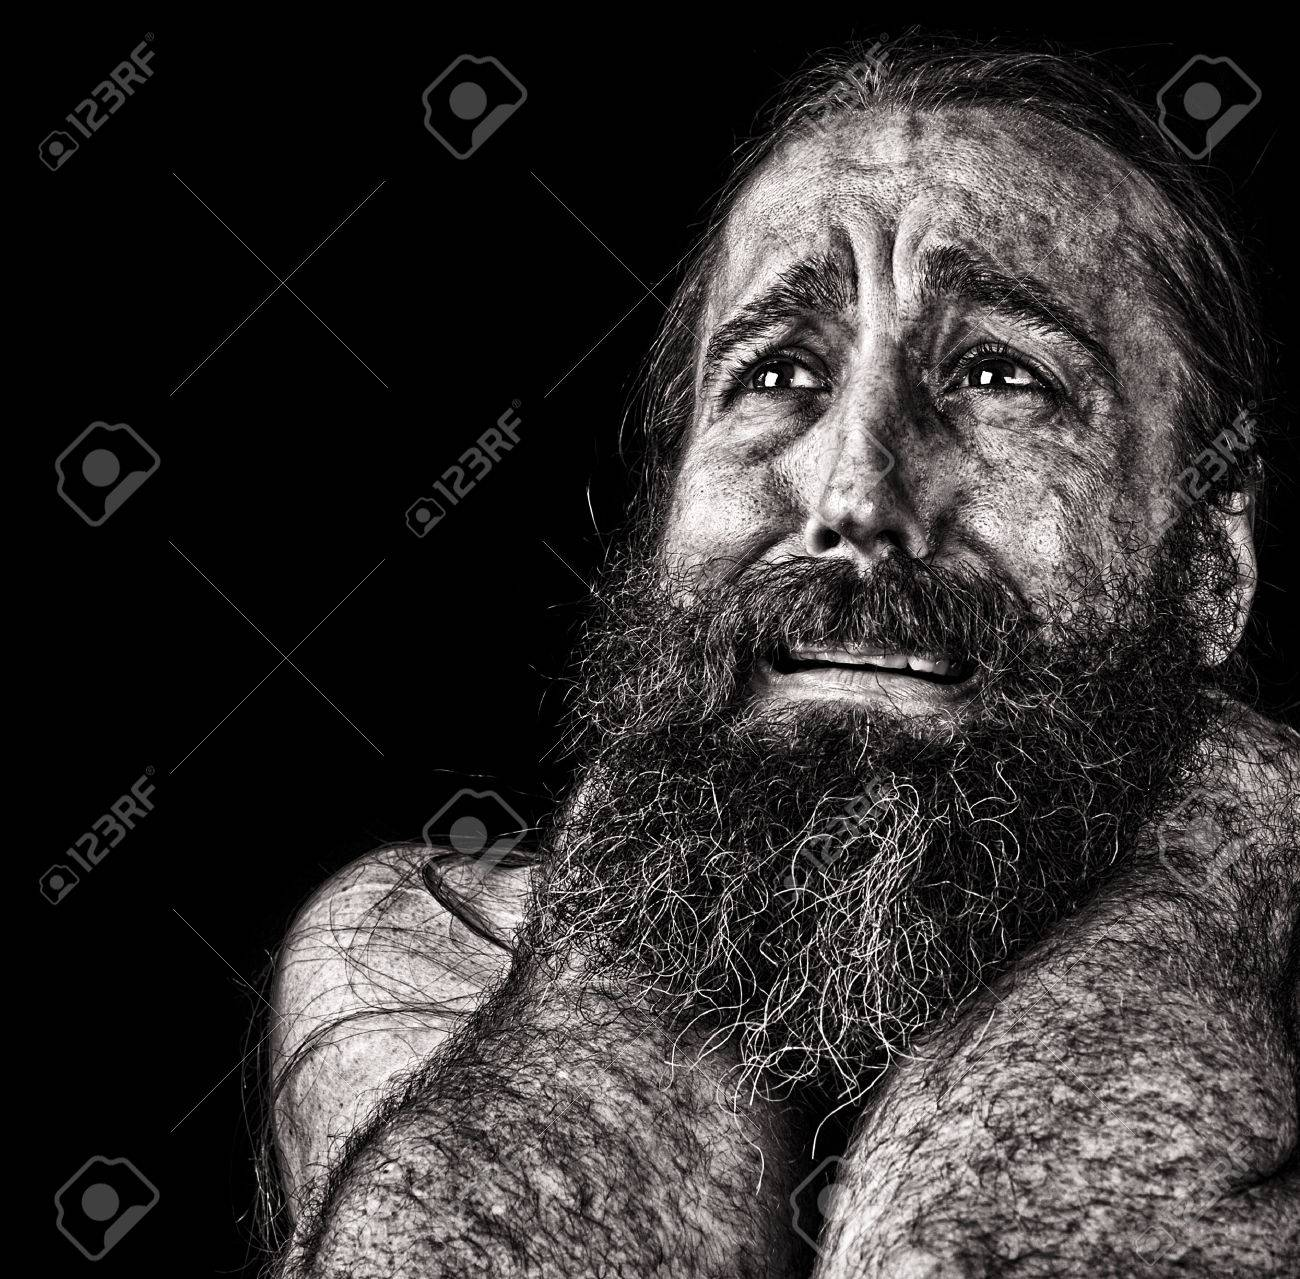 Tremendous Very Emotional Image Of A Bearded Homeless Man Crying Interior Design Ideas Inesswwsoteloinfo